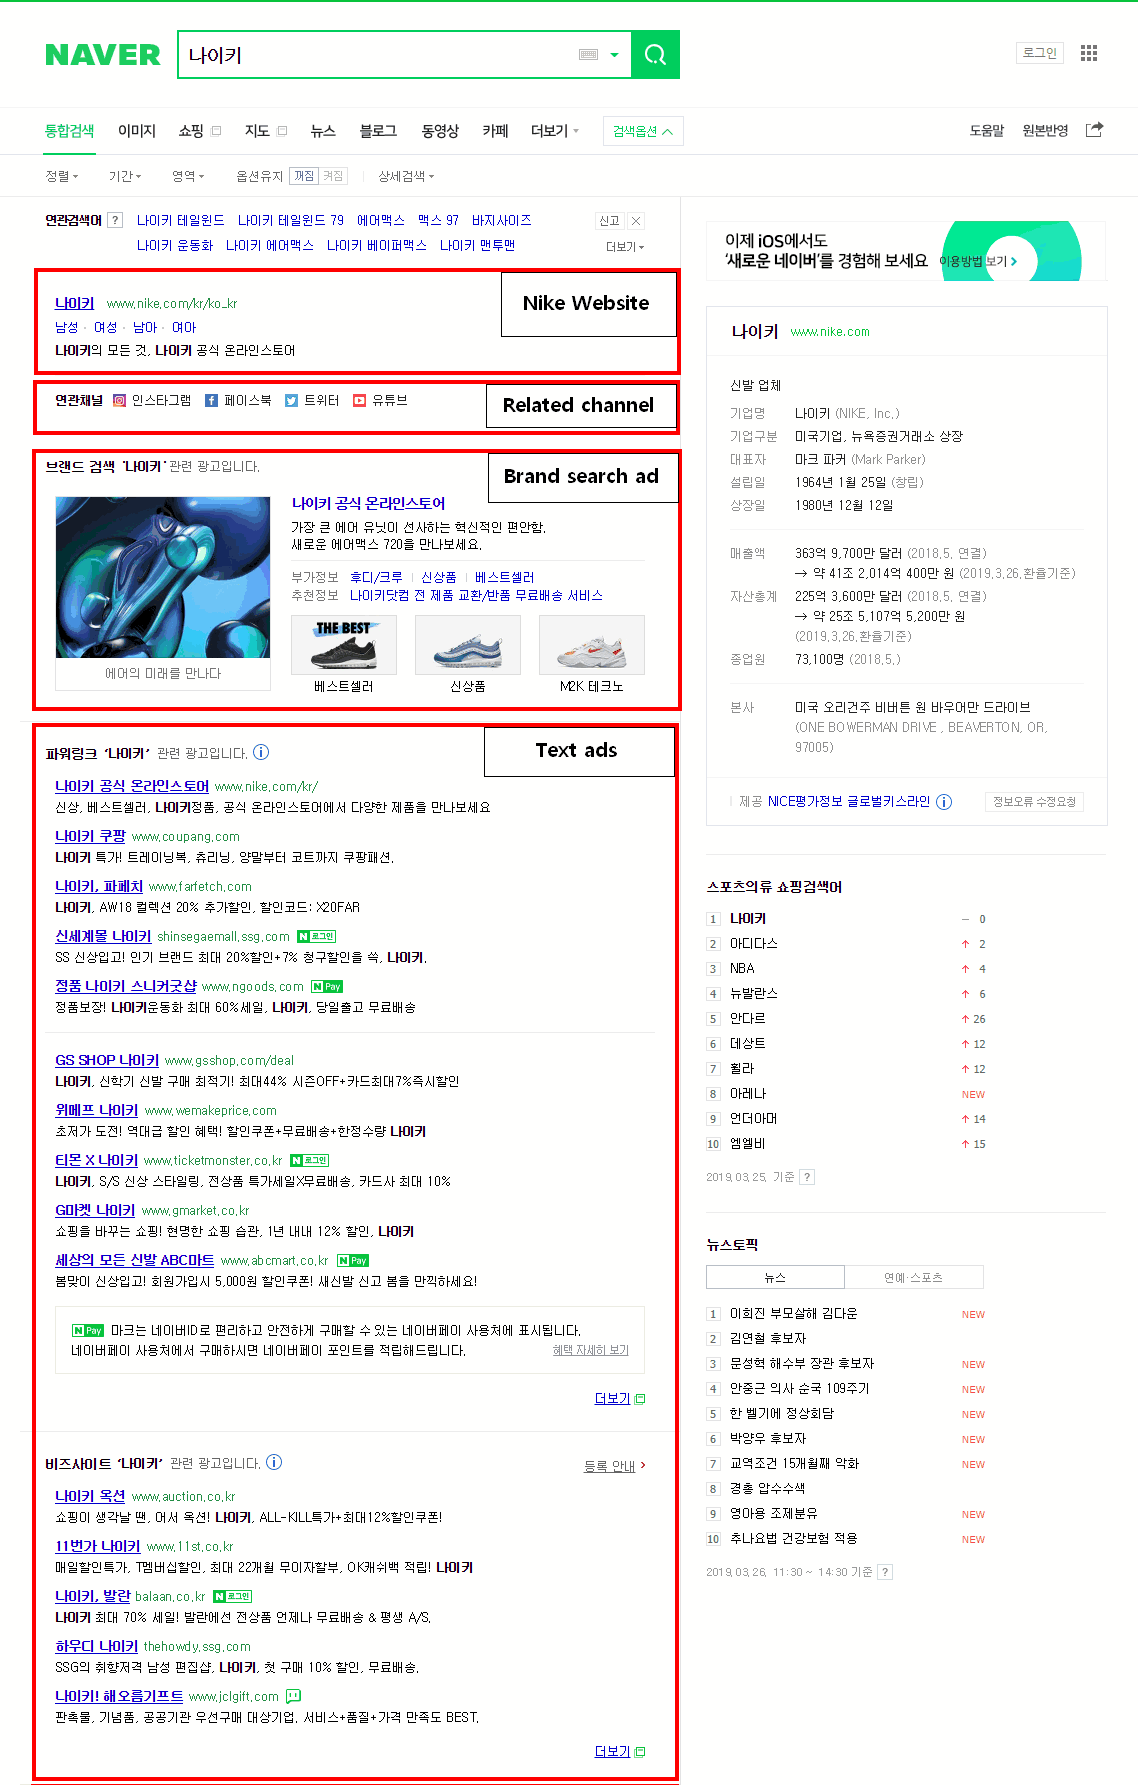 Naver Ads: SERP Example